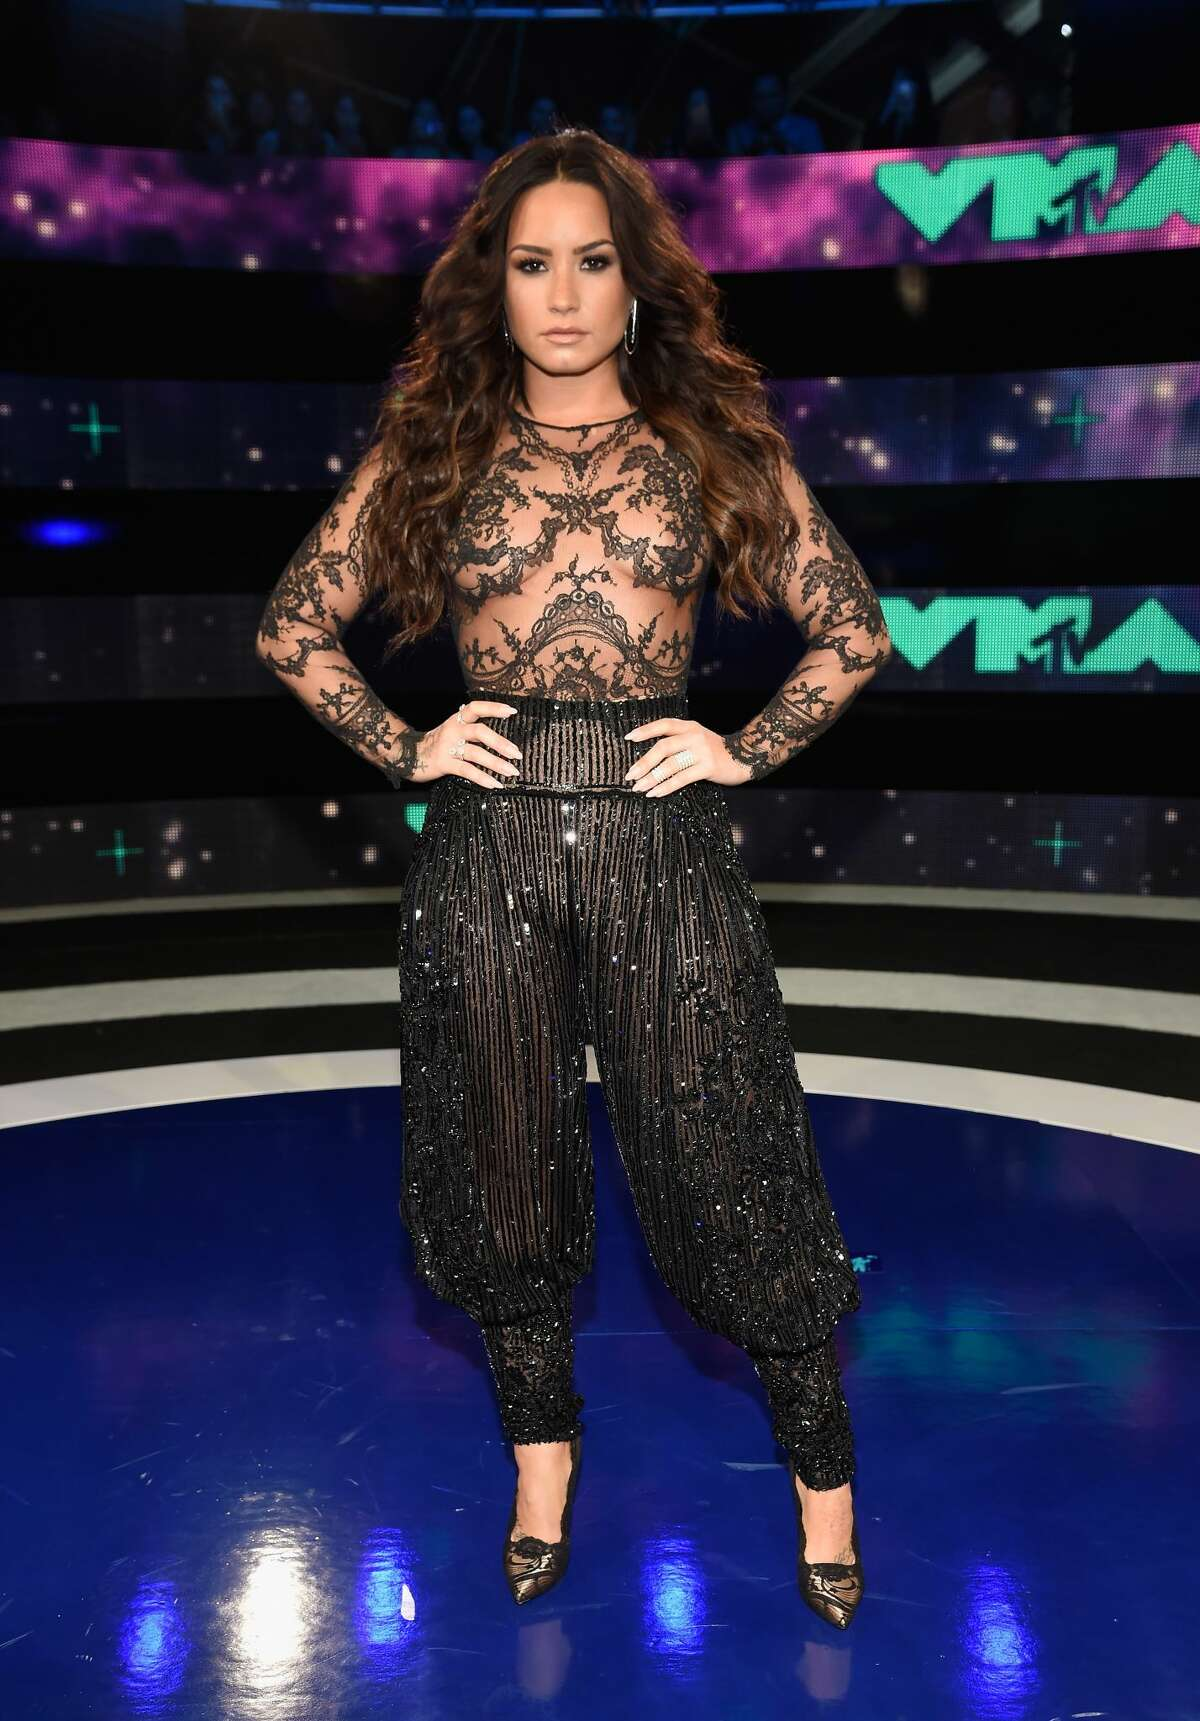 Best:Demi Lovato, are you here to slay or kill it? We're fine with both.